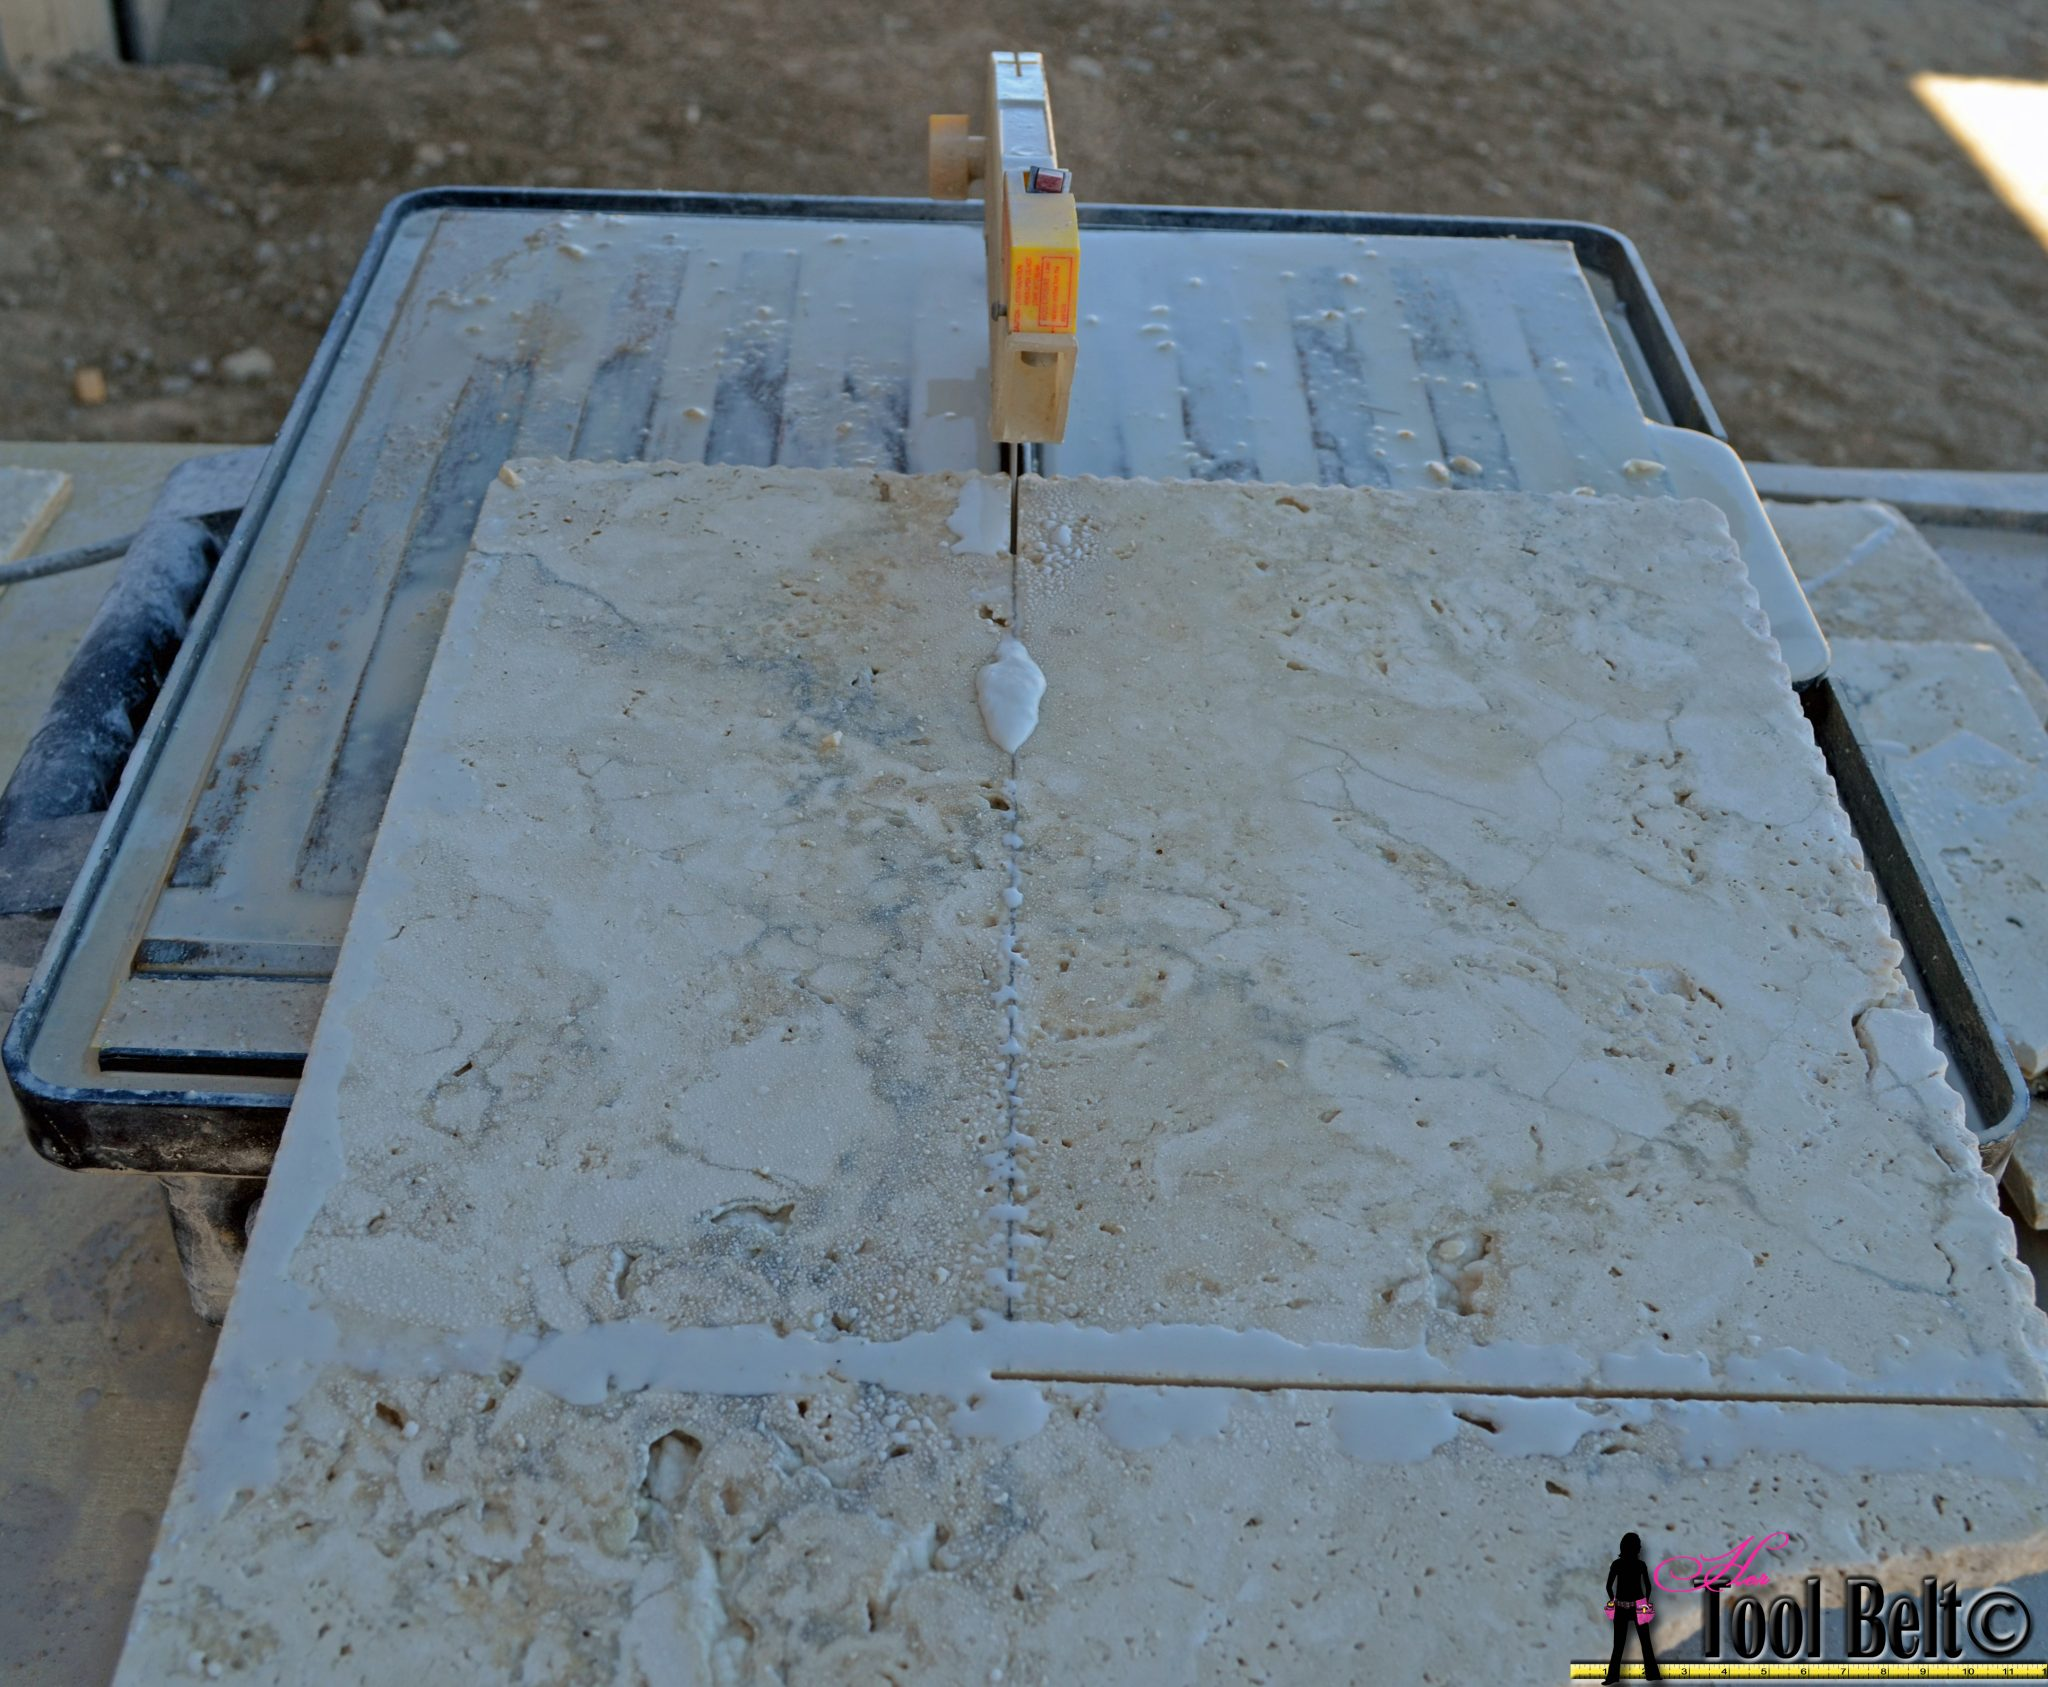 Travertine versailles pattern tile tutorial her tool belt always wear safety glasses when cutting tile measure and mark on the tile with pencil where to make your cut gently feed the tile into the tile saw blade greentooth Choice Image